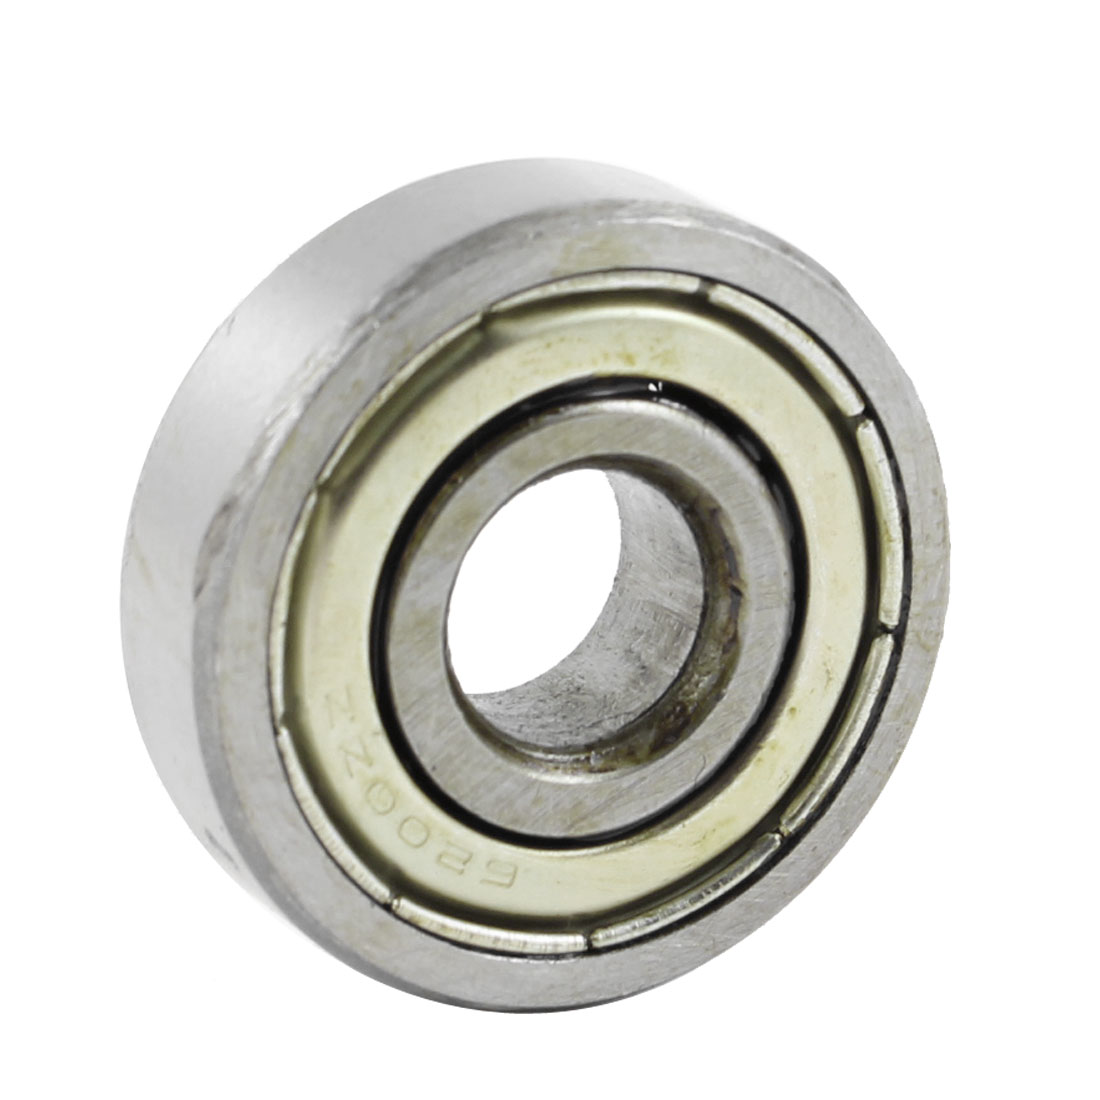 6200ZZ 10mm x 30mm x 9mm Sealed Single Row Deep Groove Ball Bearing